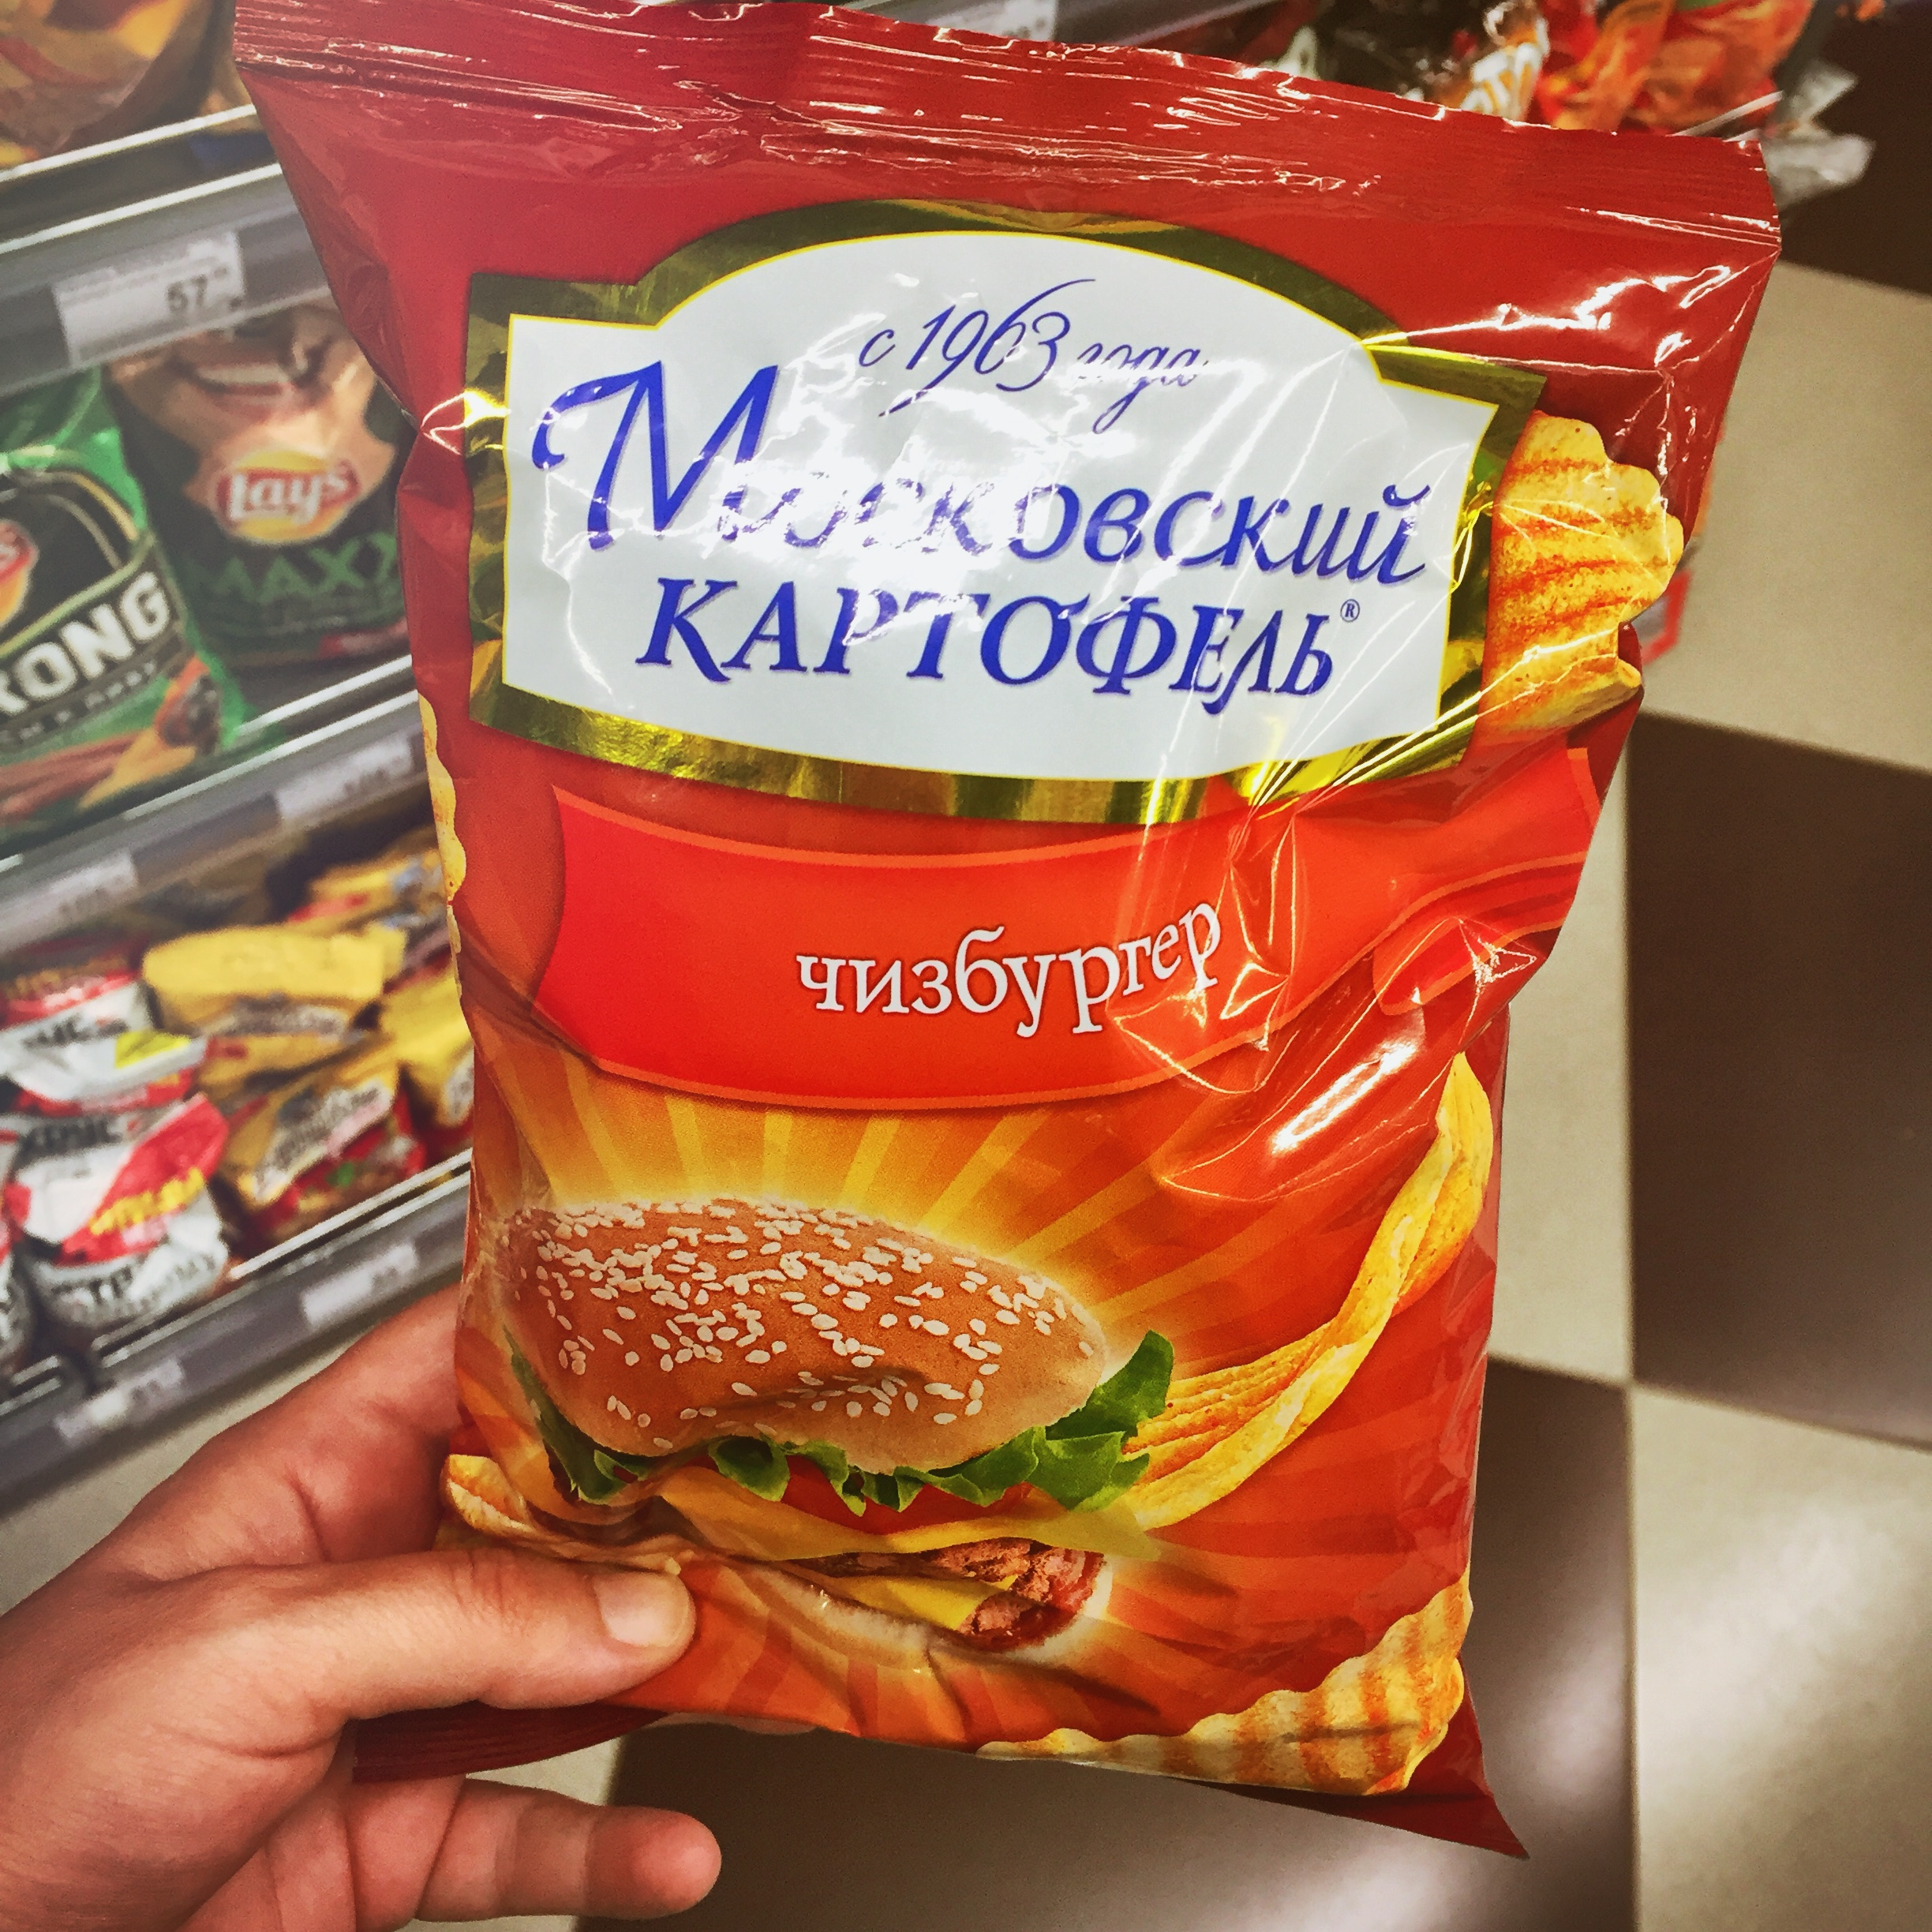 kscheib russland chips cheeseburger